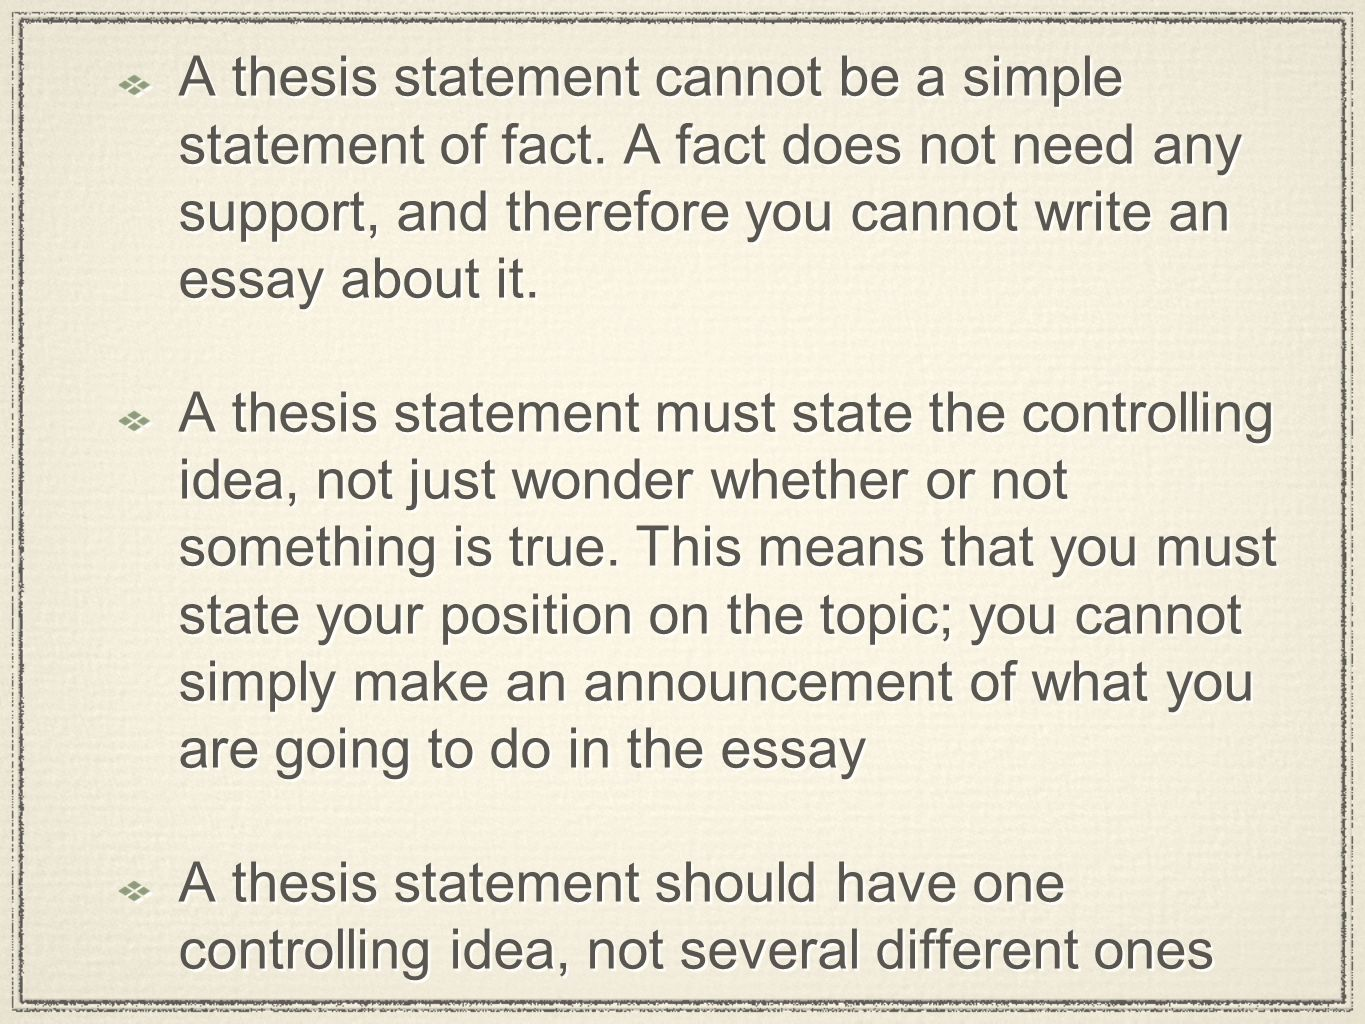 A Thesis Statement Cannot Be A Simple Statement Of Fact